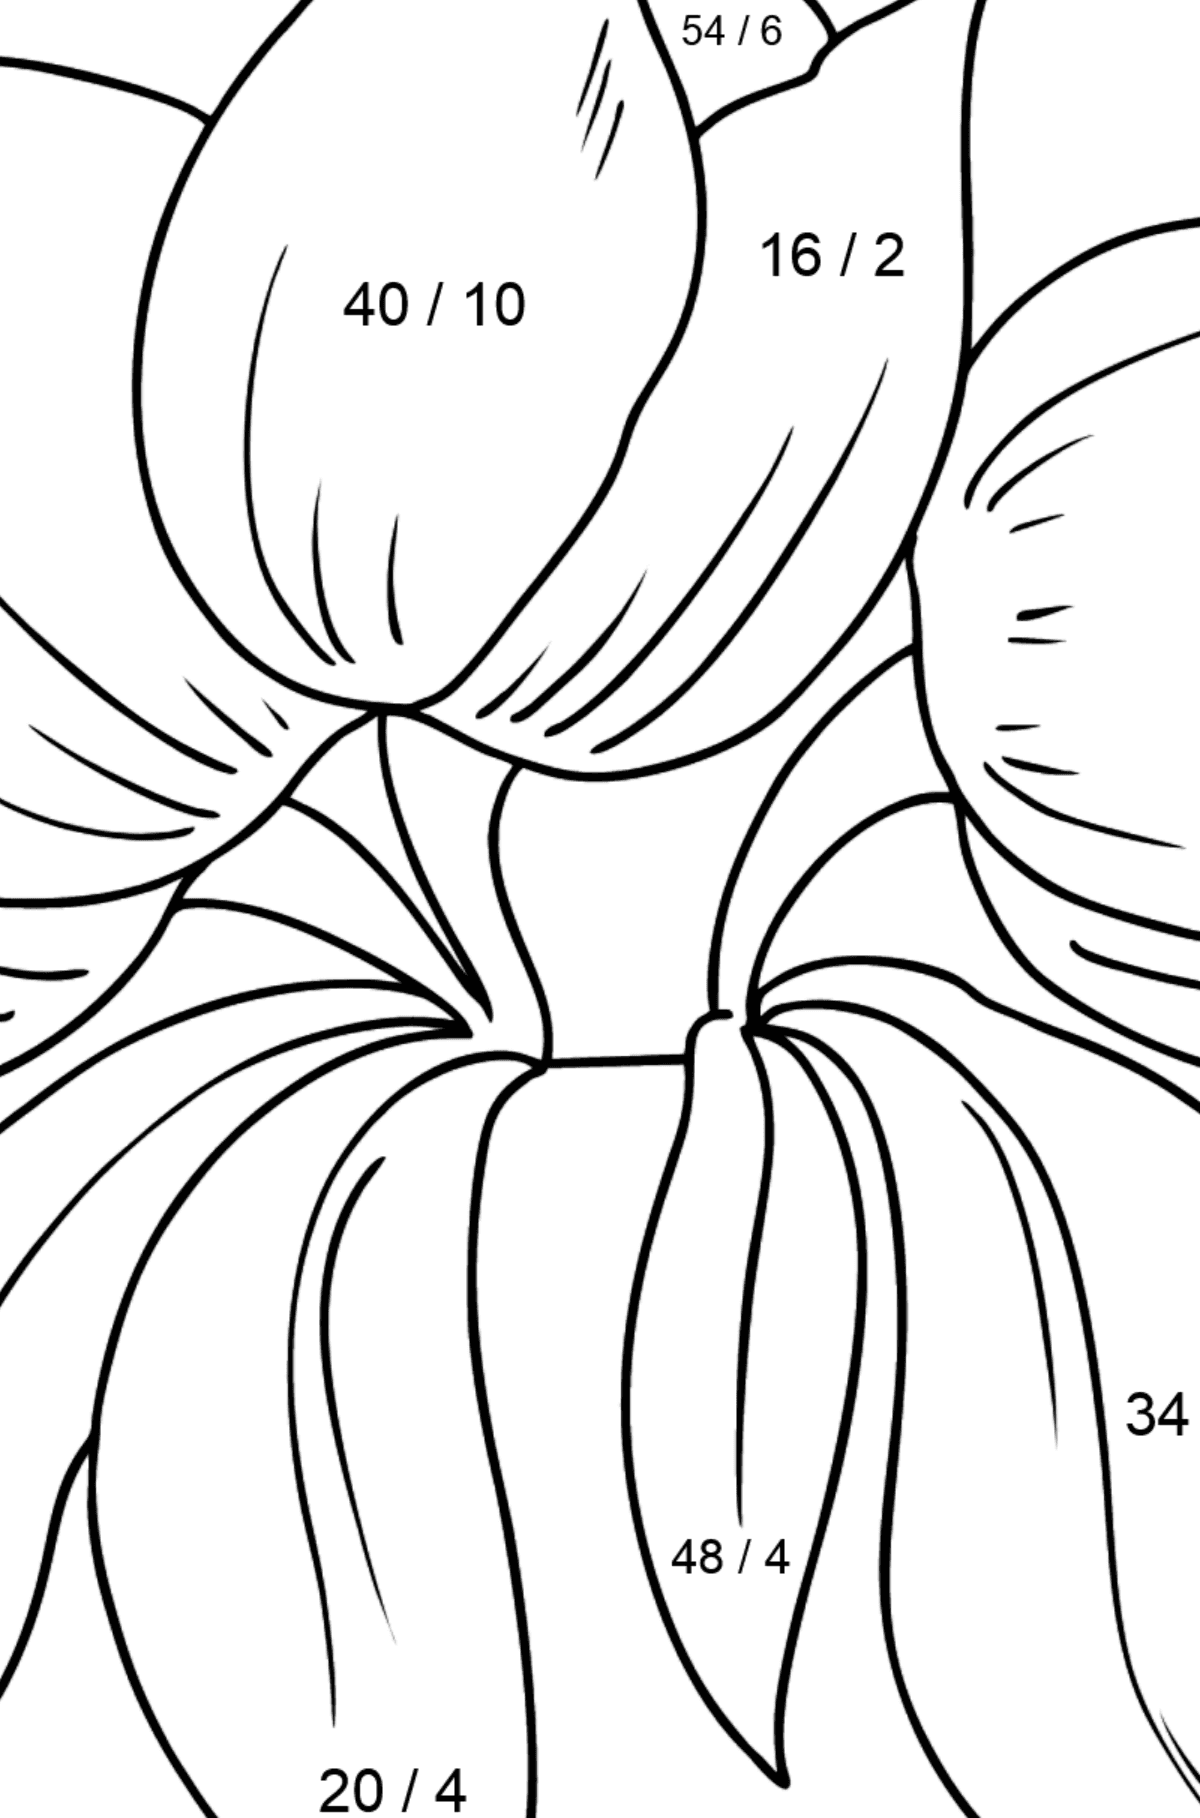 Flower Coloring Page - Tulips - Math Coloring - Division for Kids